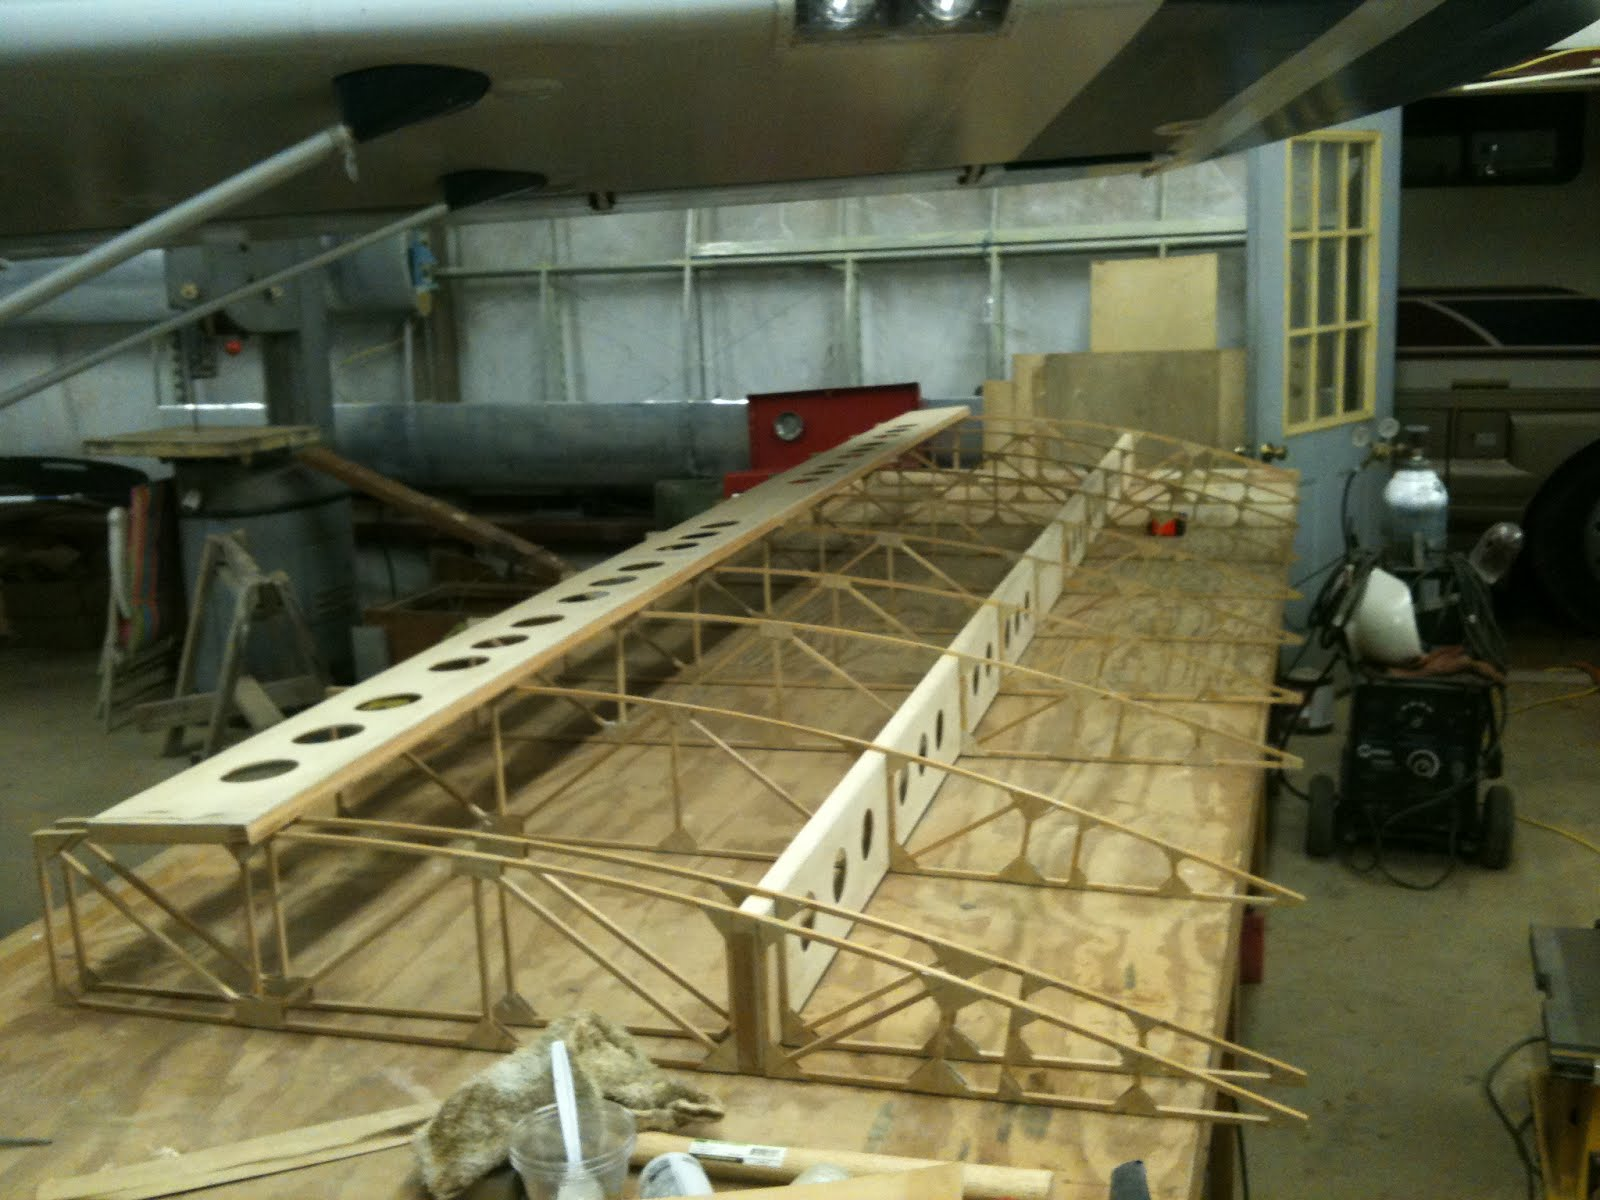 Legal Eagle Build: Wing one is on the wall, and wing two is